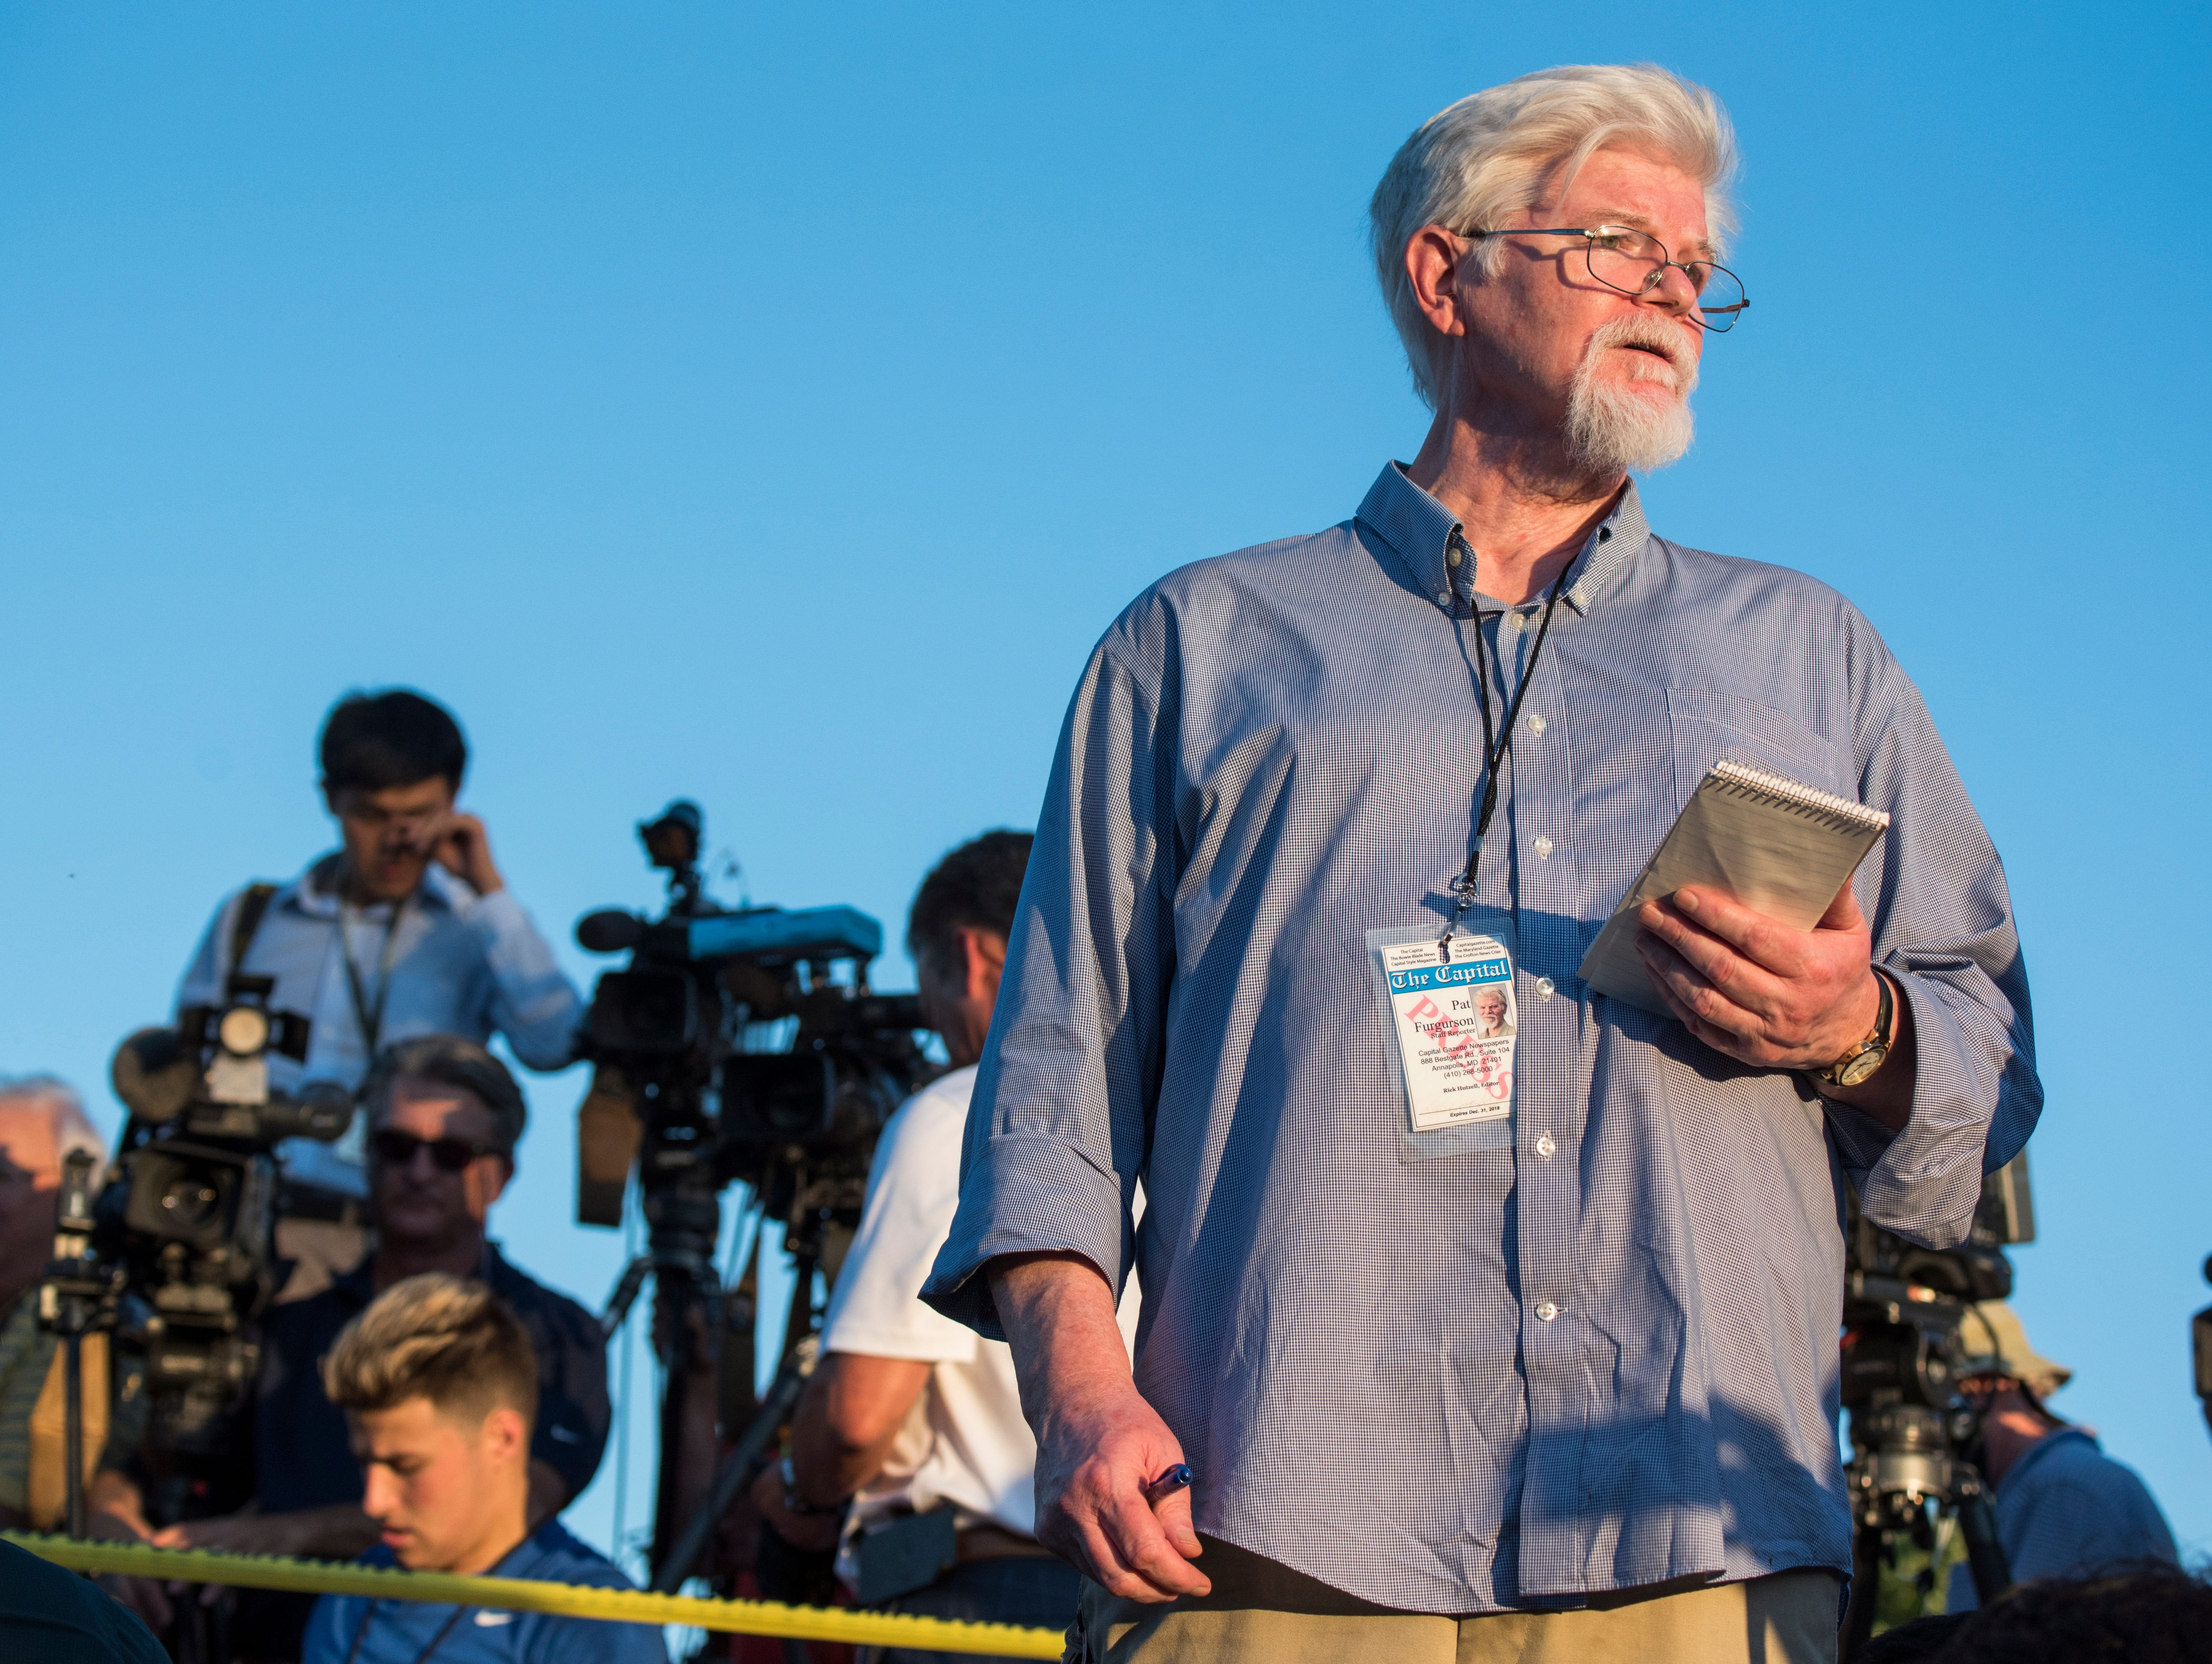 June 28, 2018: Pat Furgurson, staff reporter of the Capital Gazette, reports outside the scene of a shooting at the Capital Gazette building in Annapolis, Md. Five newspaper employees were killed and several injured in the shooting.